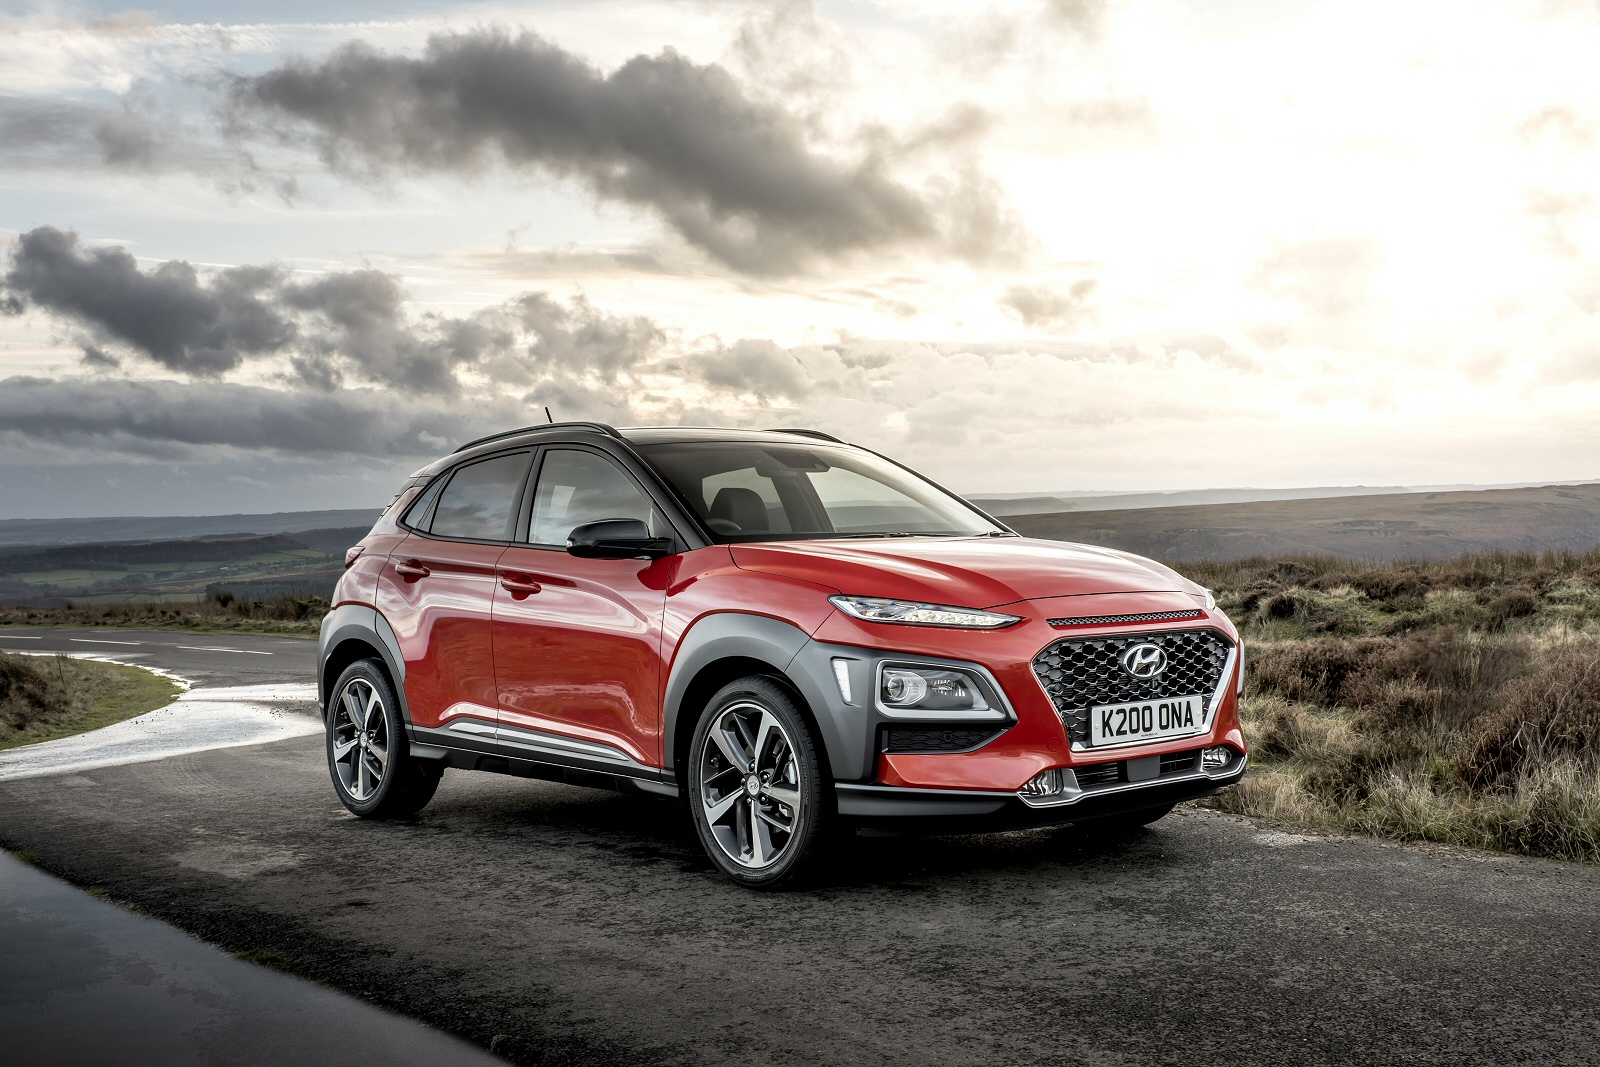 new hyundai kona 1 0t gdi blue drive premium se 5dr petrol hatchback for sale macklin motors. Black Bedroom Furniture Sets. Home Design Ideas